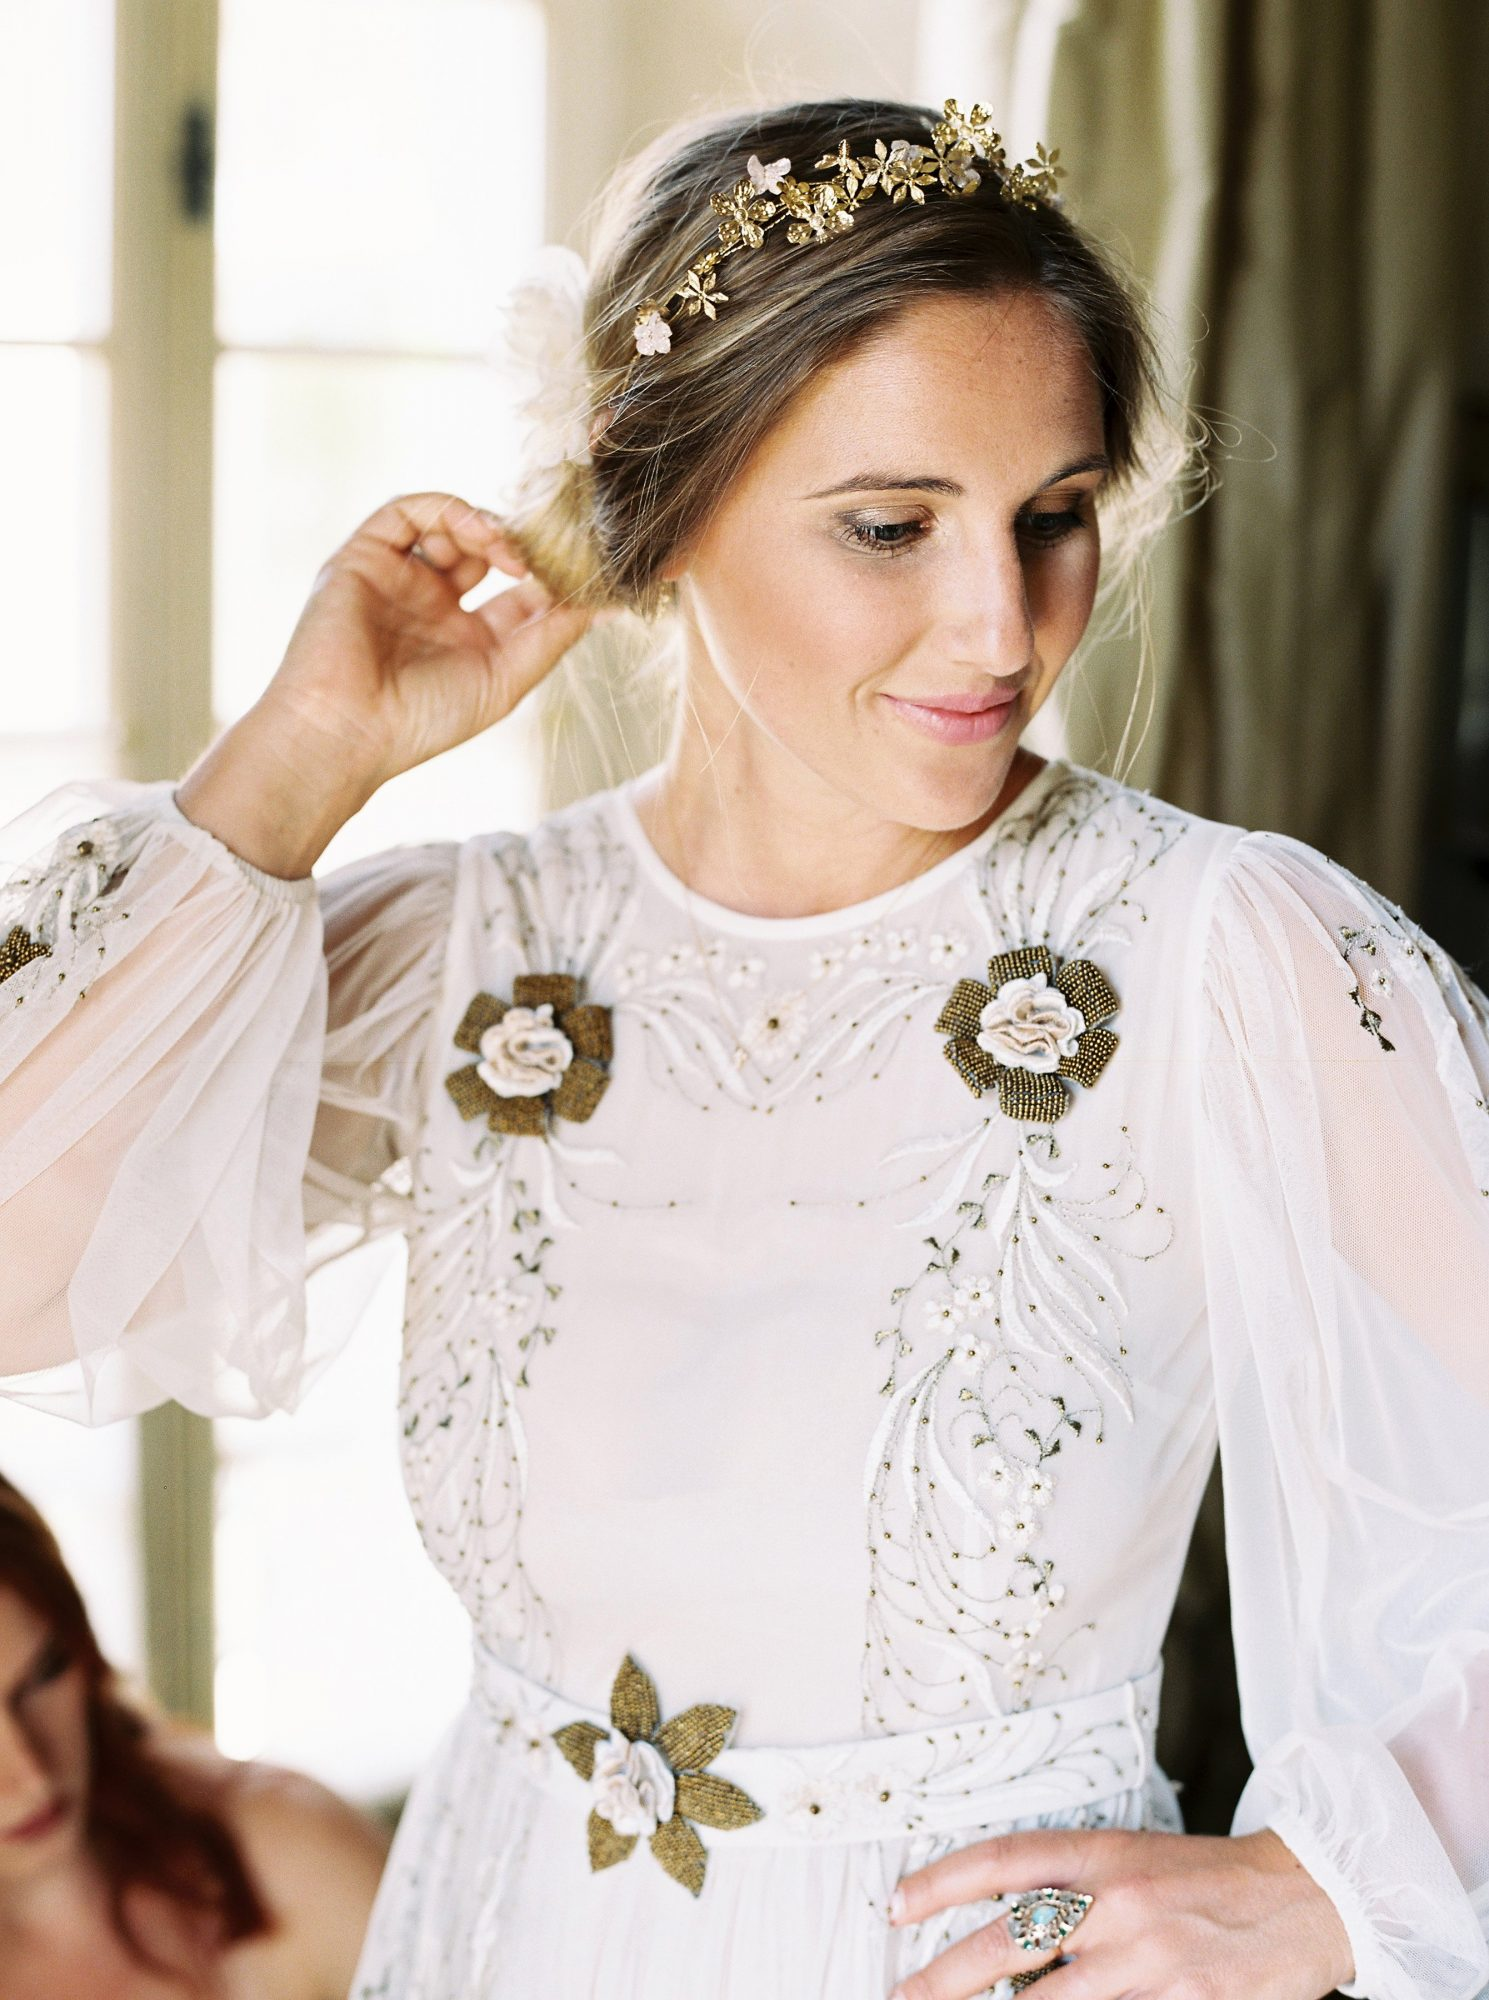 Every Bride-to-Be Should Try This Simple Beauty Routine for